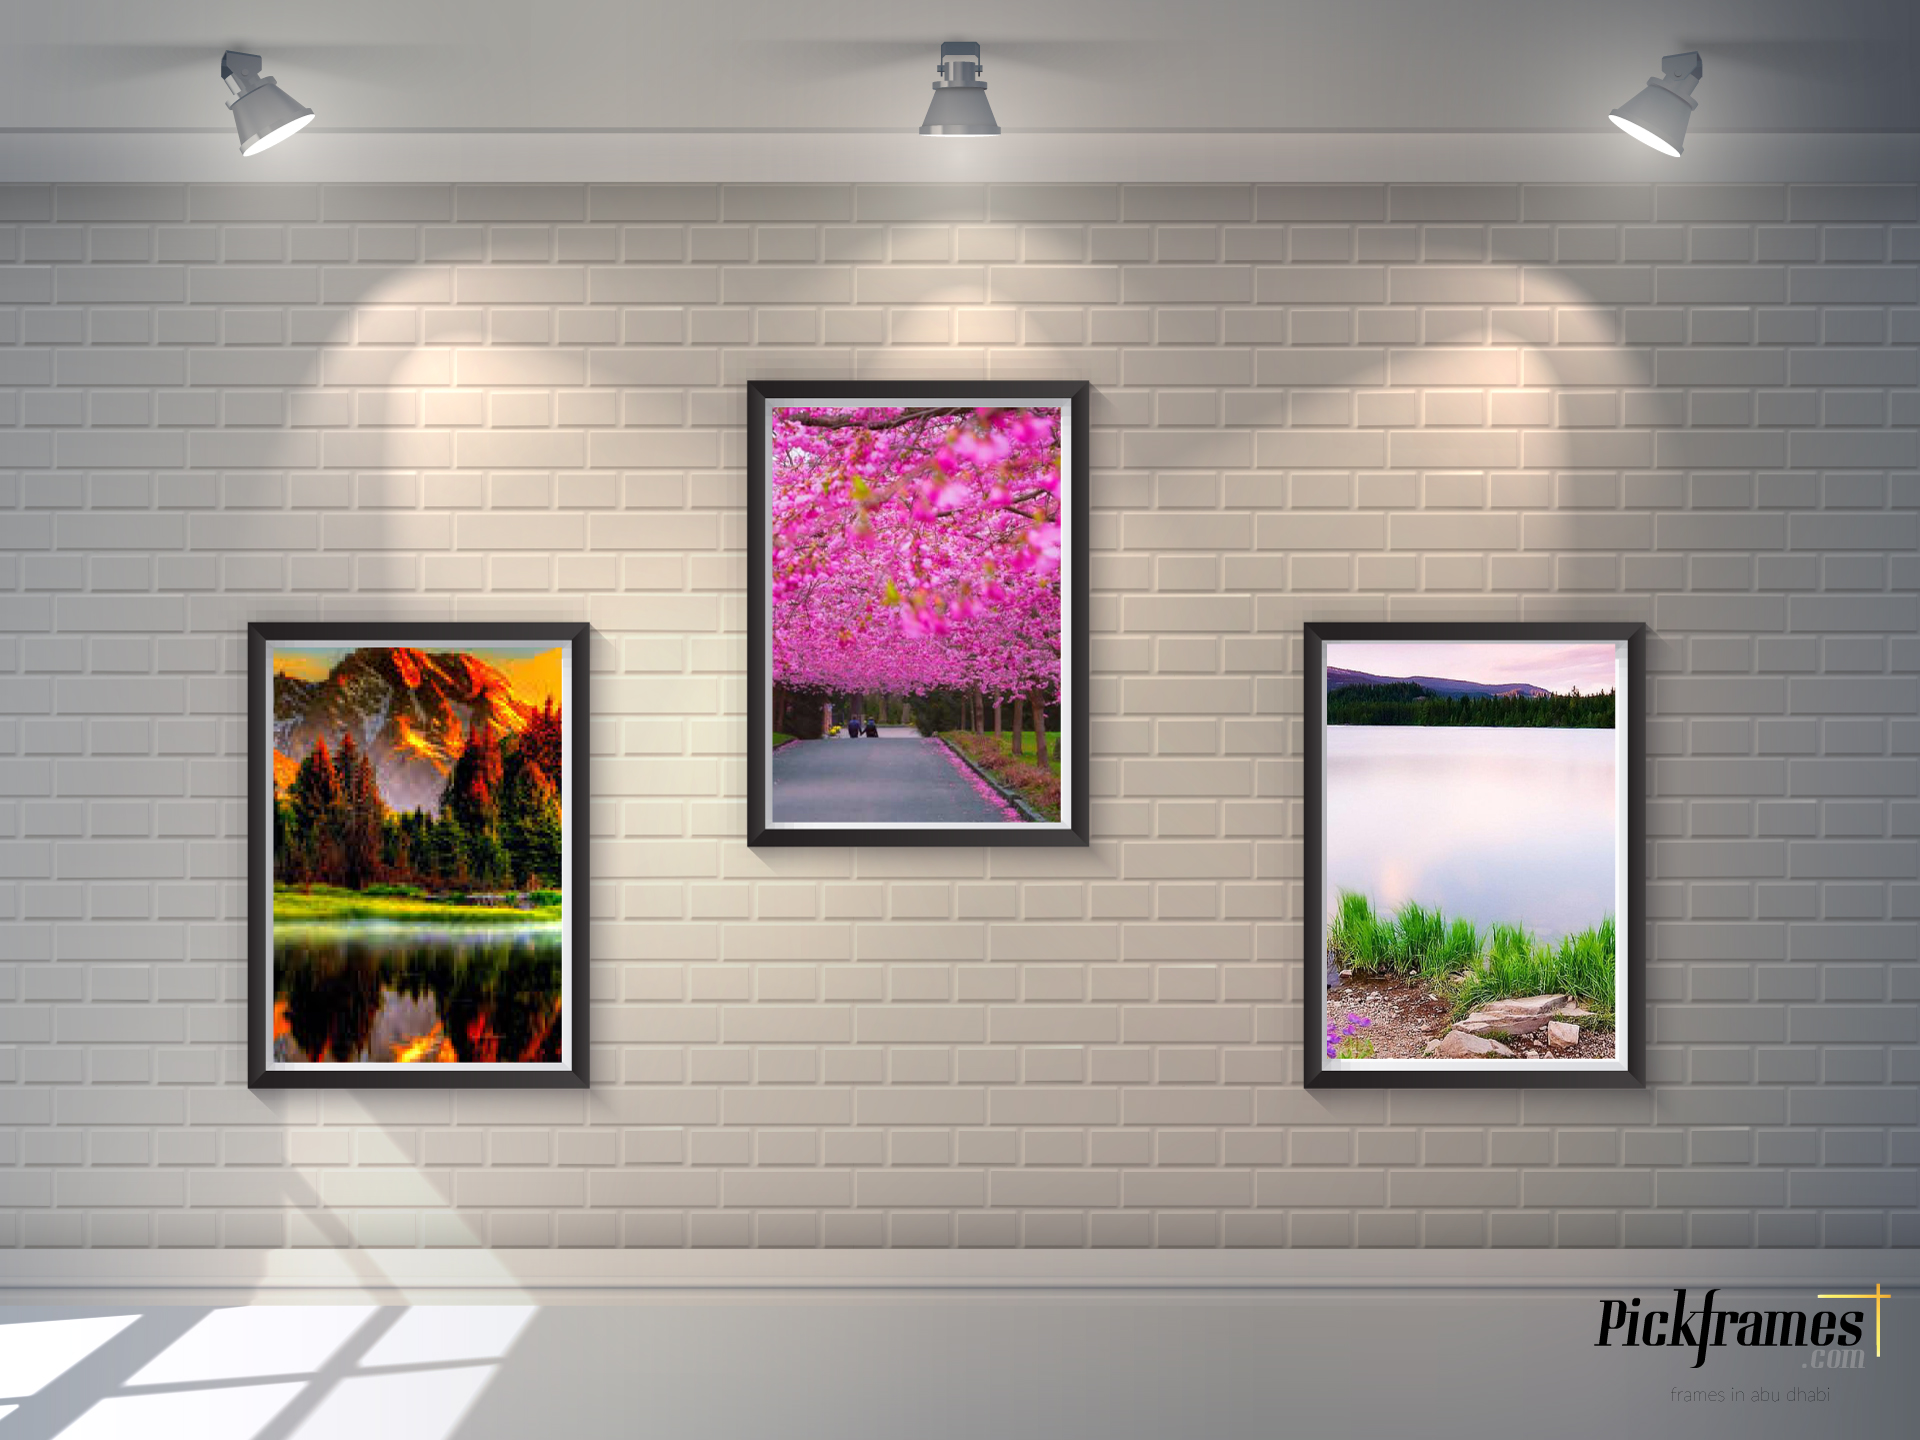 Best Frames For Gallery Wall In Abu Dhabi